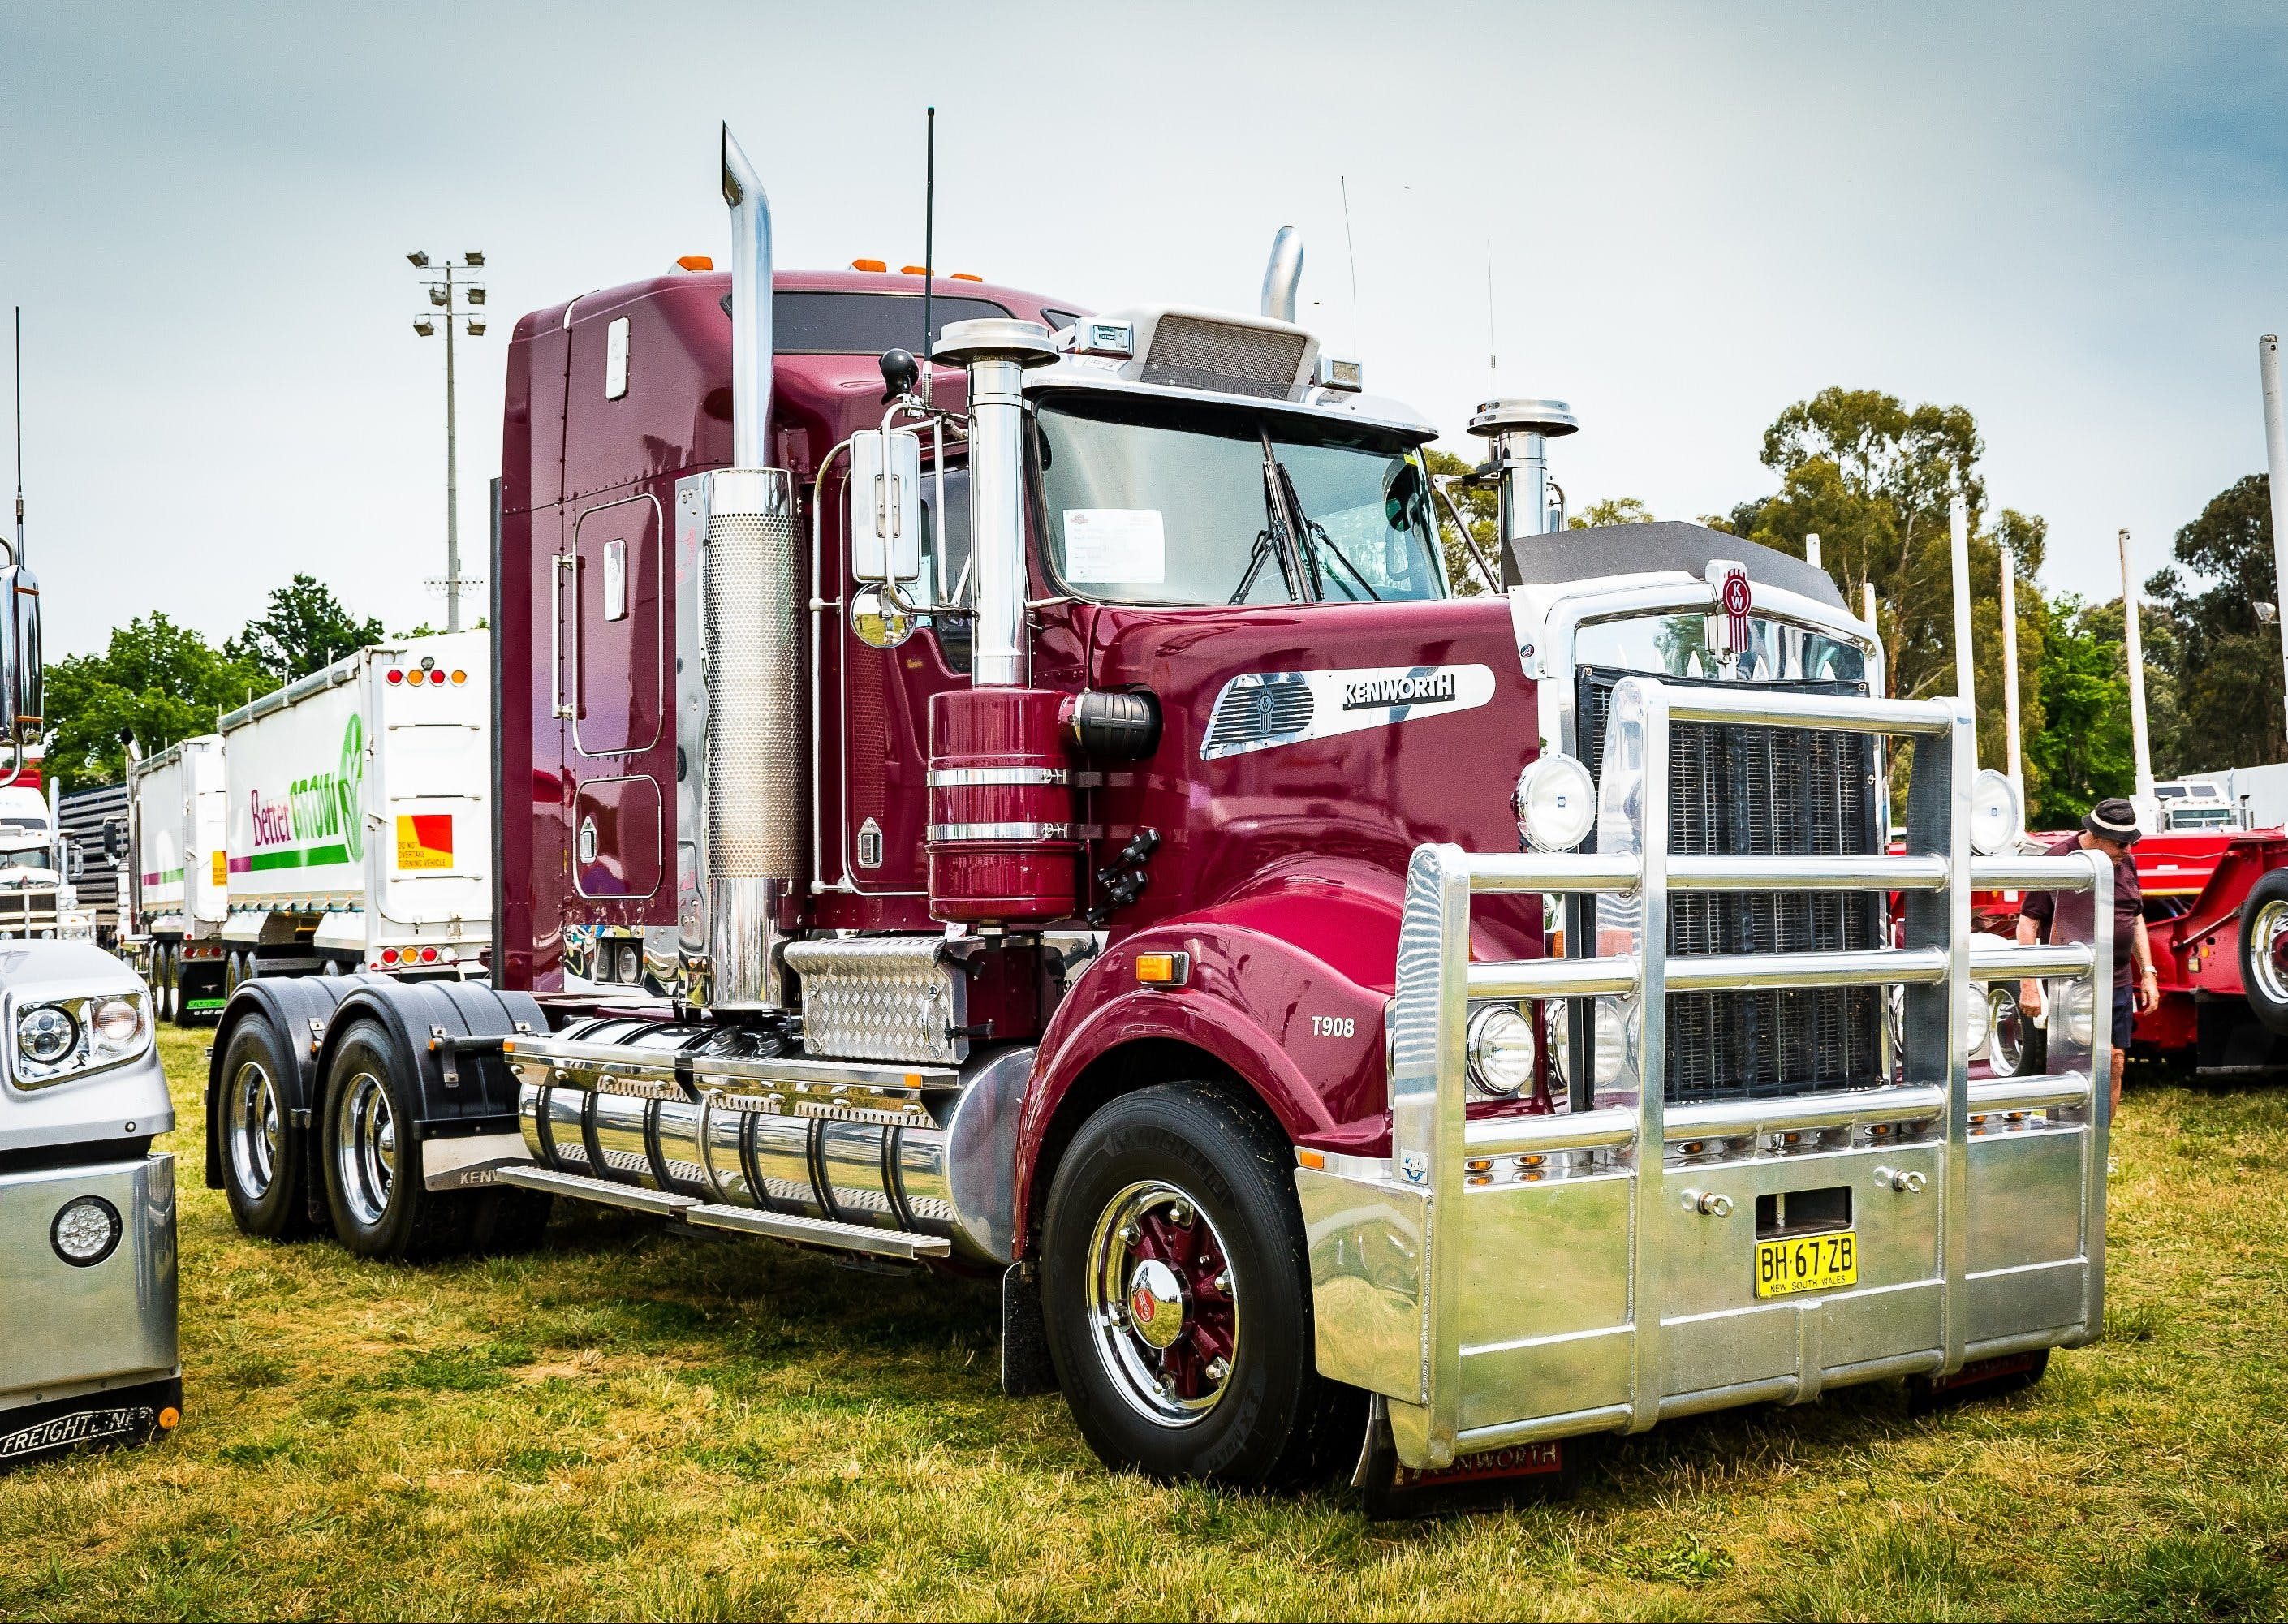 Dane Ballinger Memorial Truck Show - Lightning Ridge Tourism